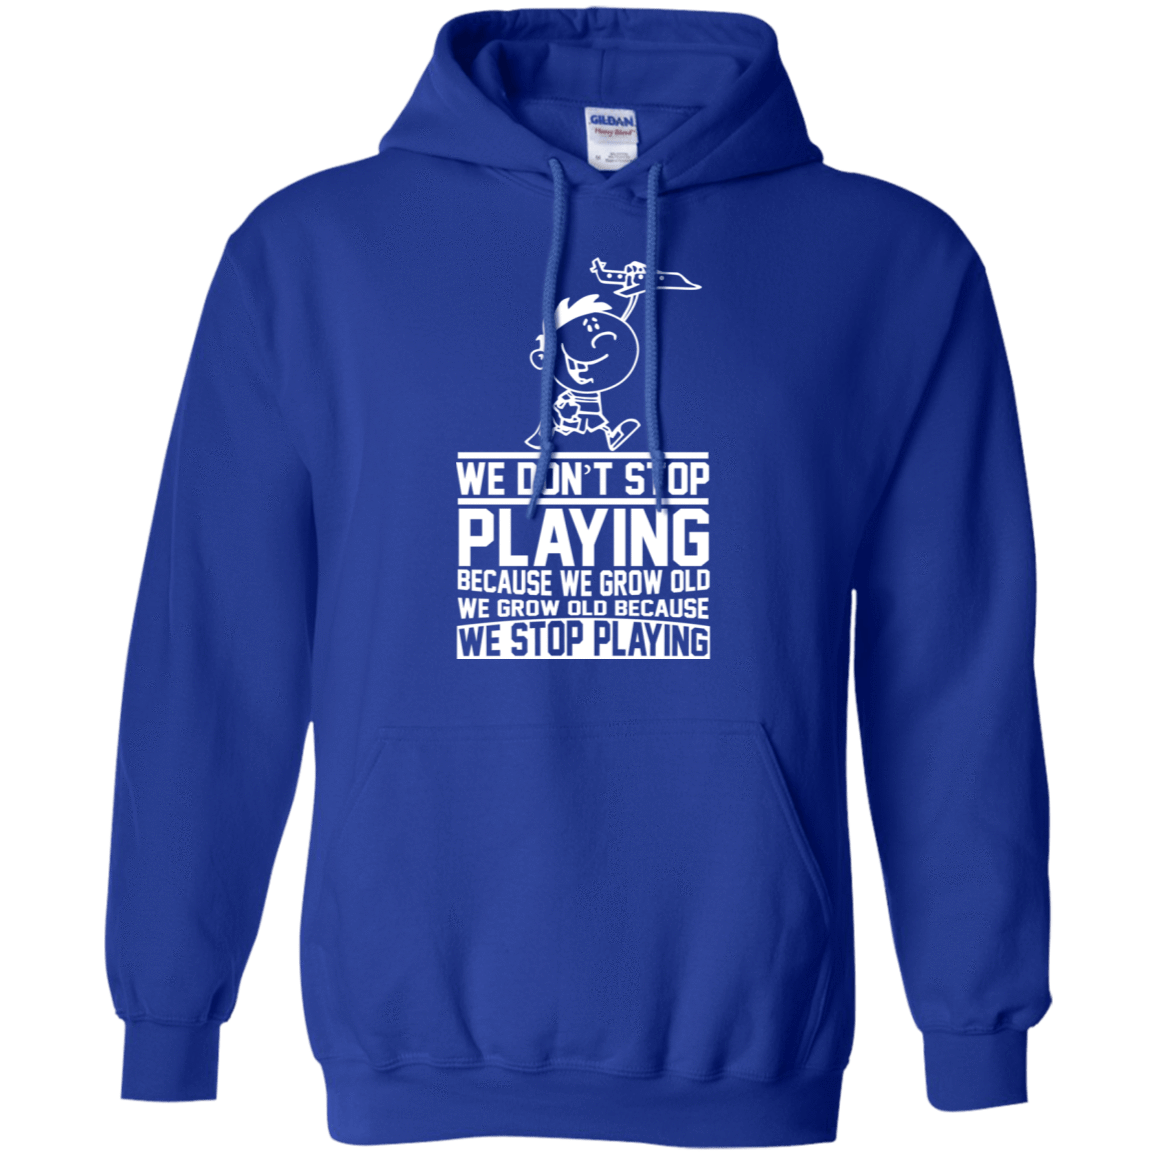 We Don't Stop Playing Because We Grow Old 541-4765-72773017-23175 - Tee Ript